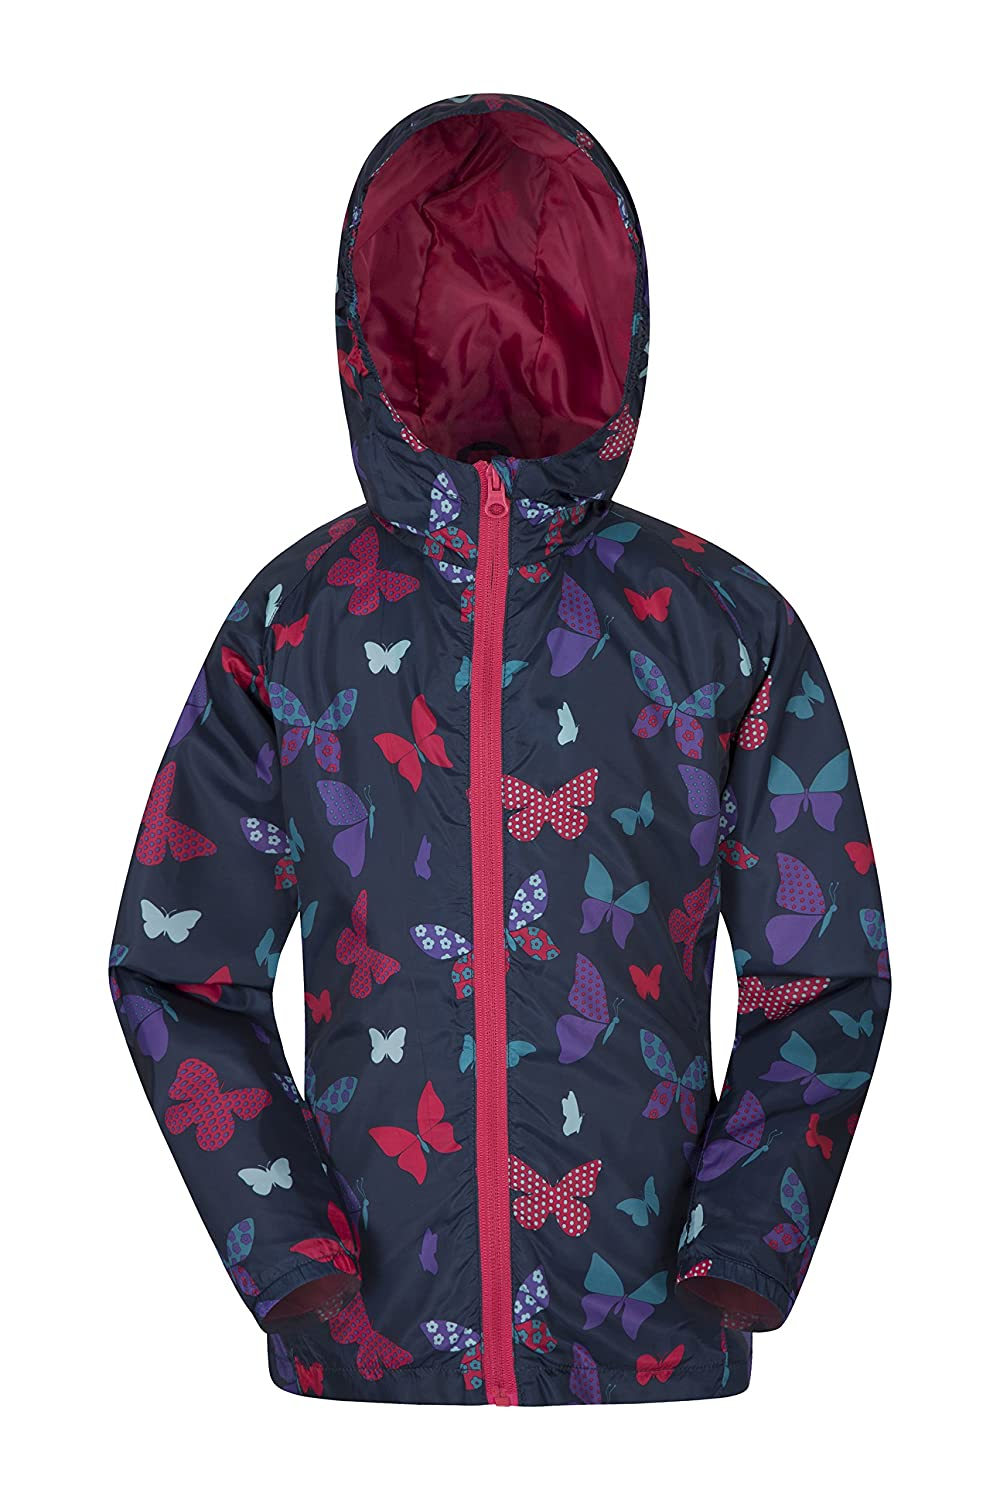 Mountain Warehouse Gizelle Kids Shell Jacket - Childrens Summer Coat